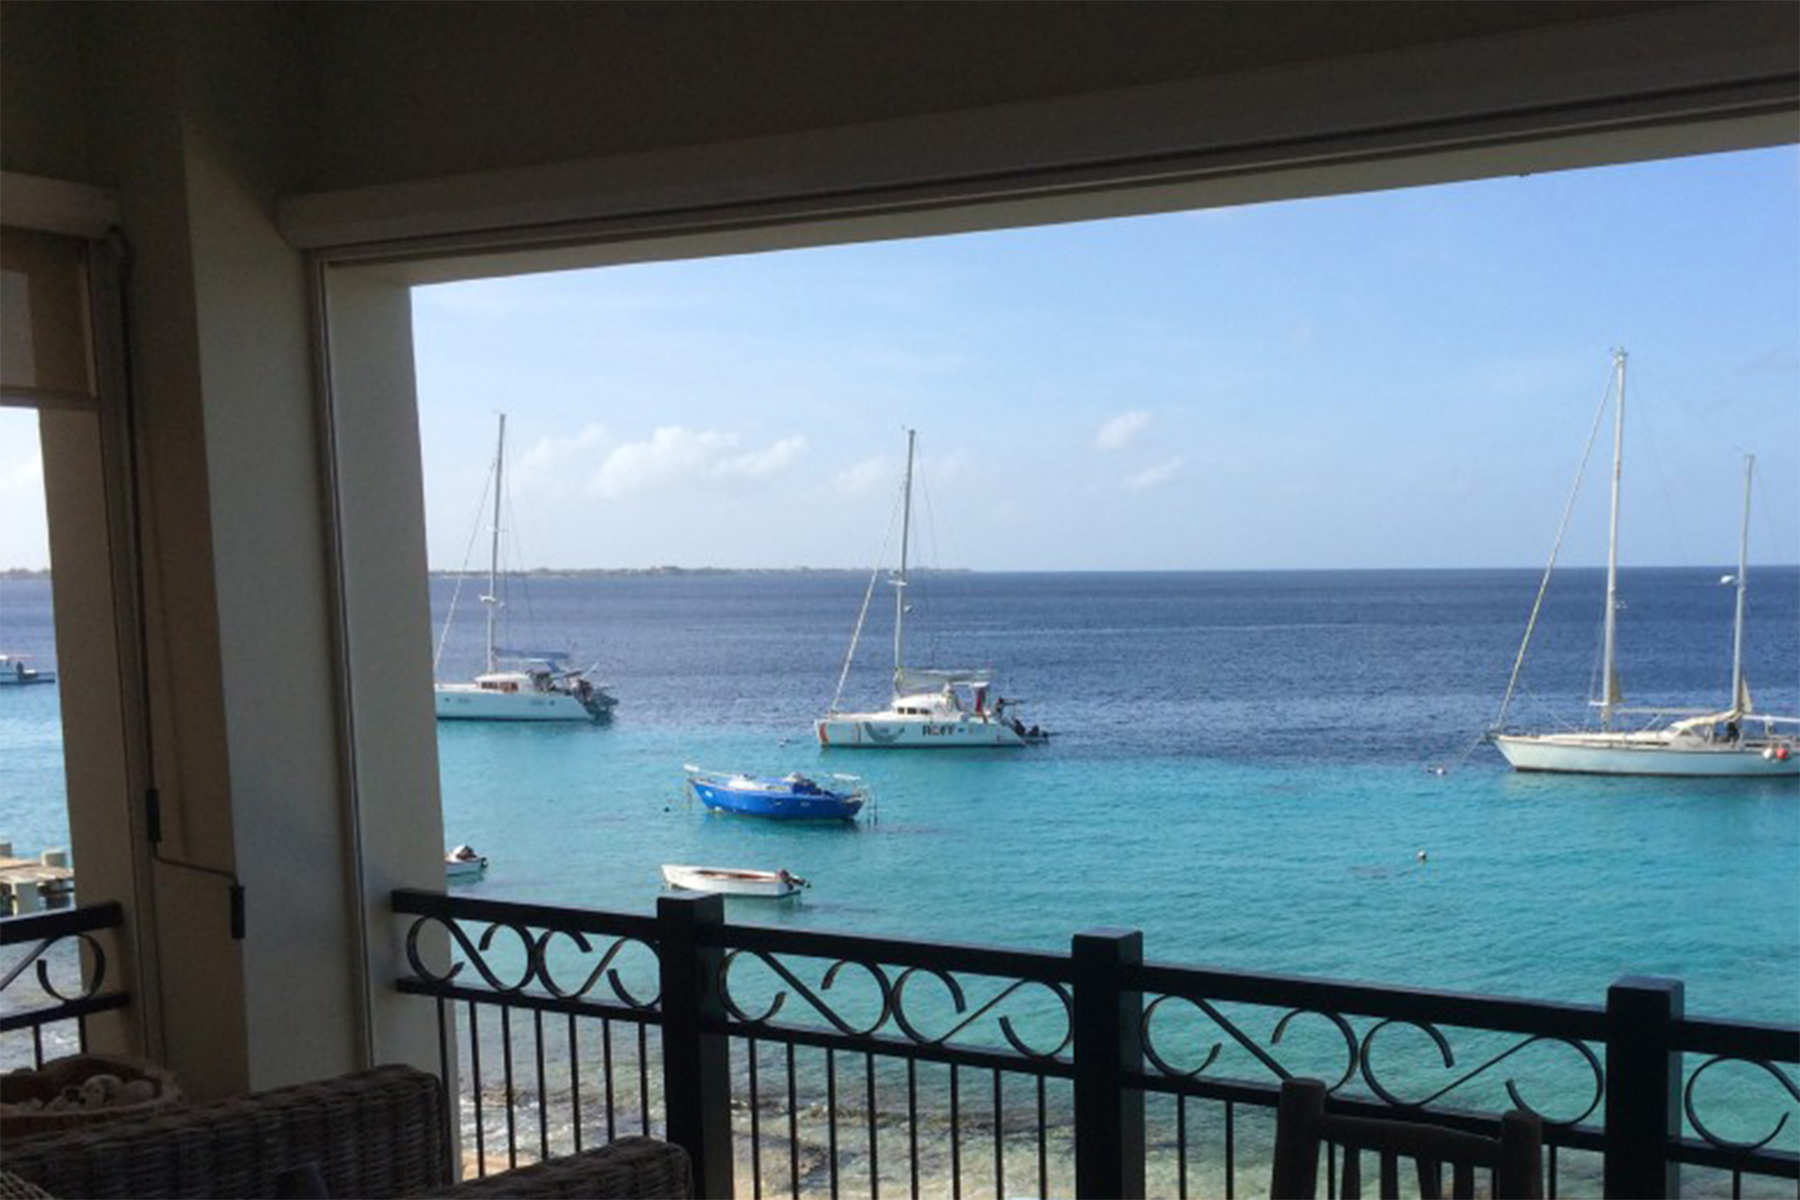 Additional photo for property listing at Elegancia del Caribe unit 2 Kralendijk,  Bonaire